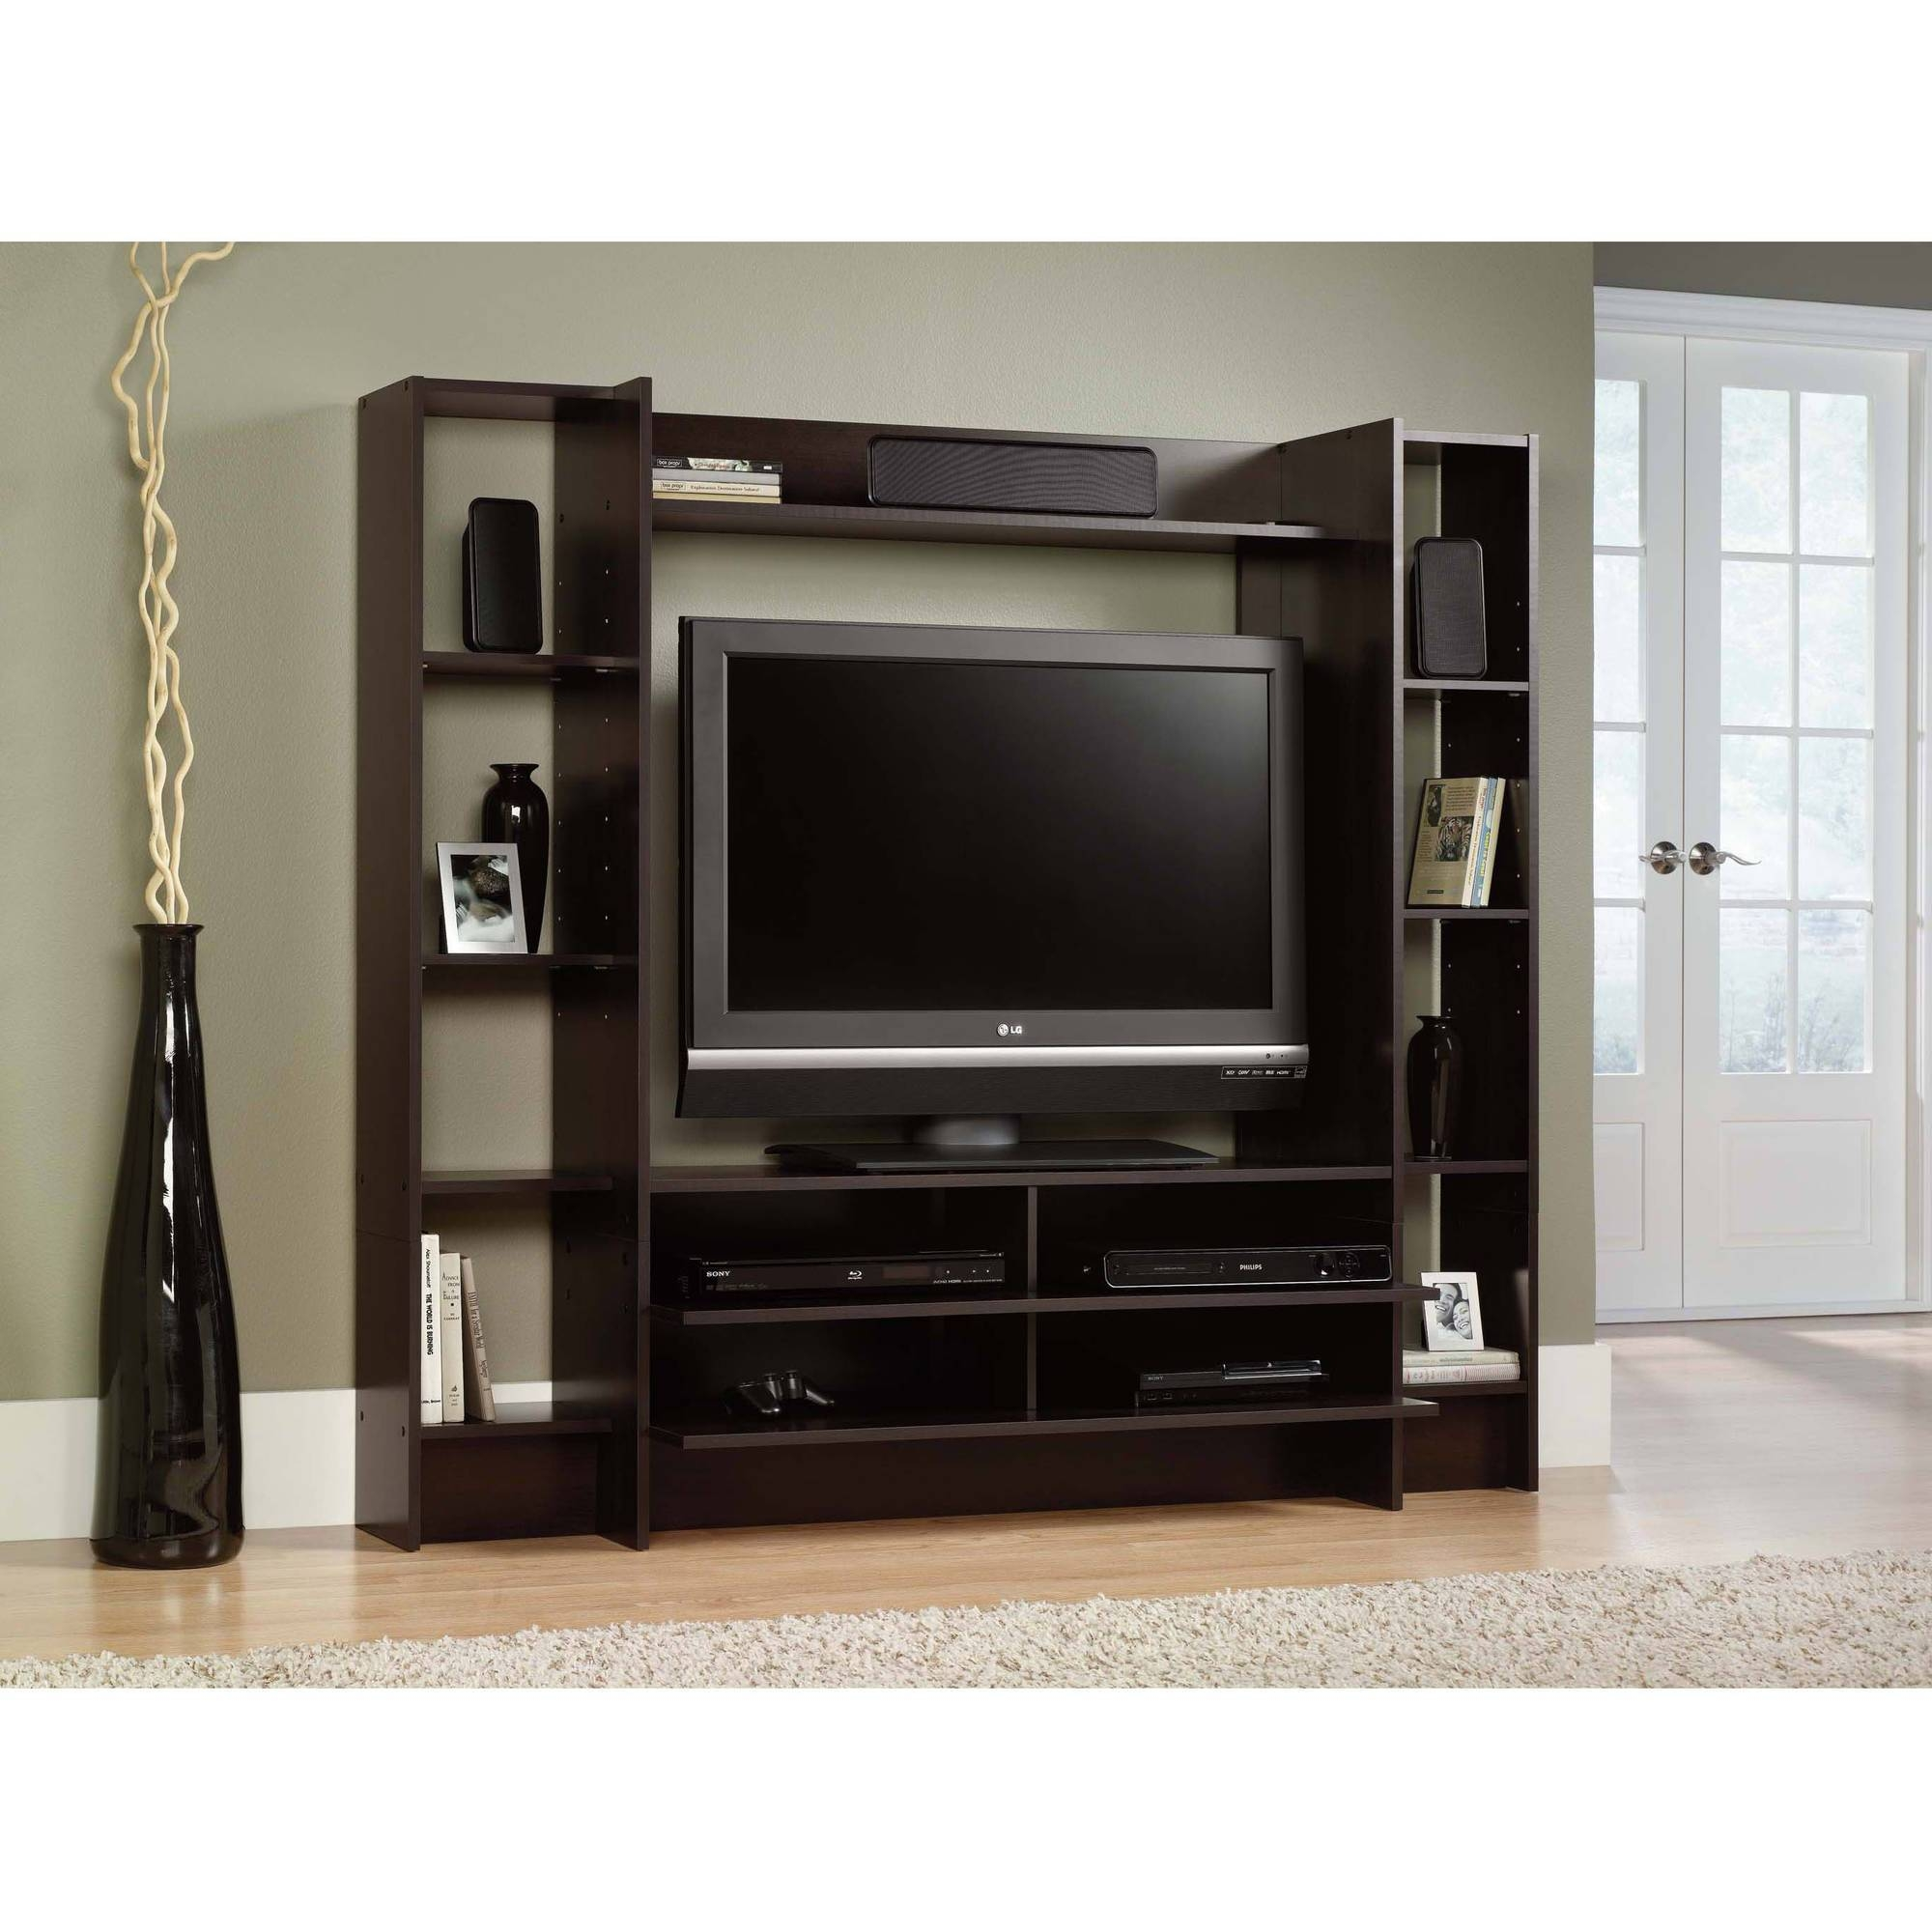 Wall Units: Amazing Walmart Entertainment Center Tv Stands Cheap throughout Entertainment Center Tv Stands (Image 14 of 15)